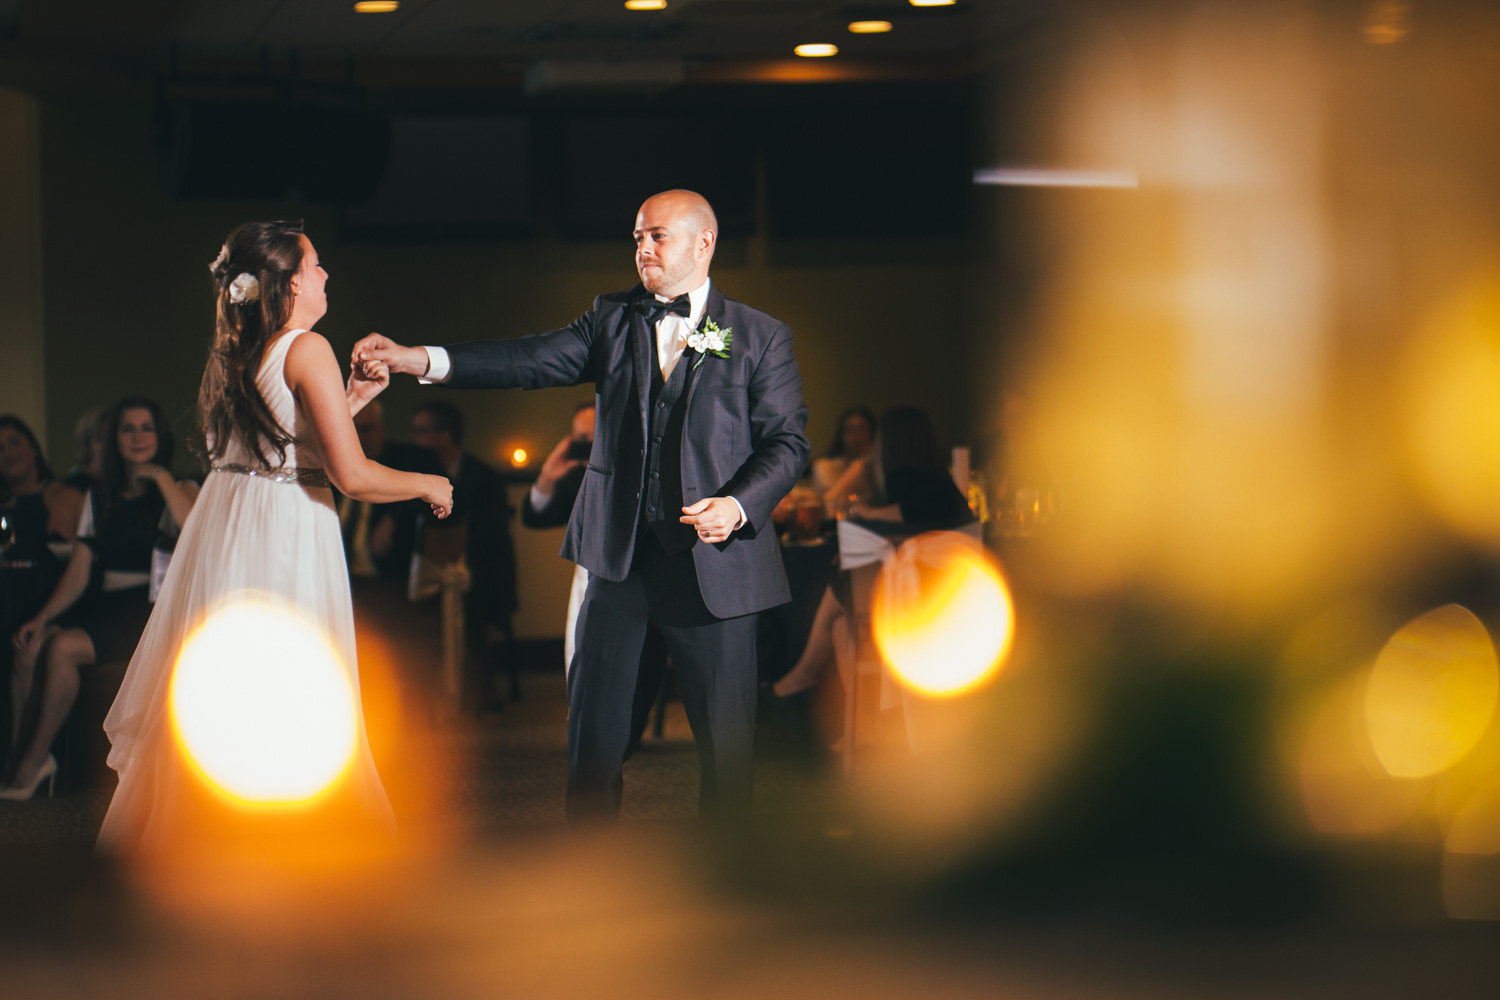 wedding-at-pnc-park-convention-center-downtown-pittsburgh-man-nguyen-photography-12